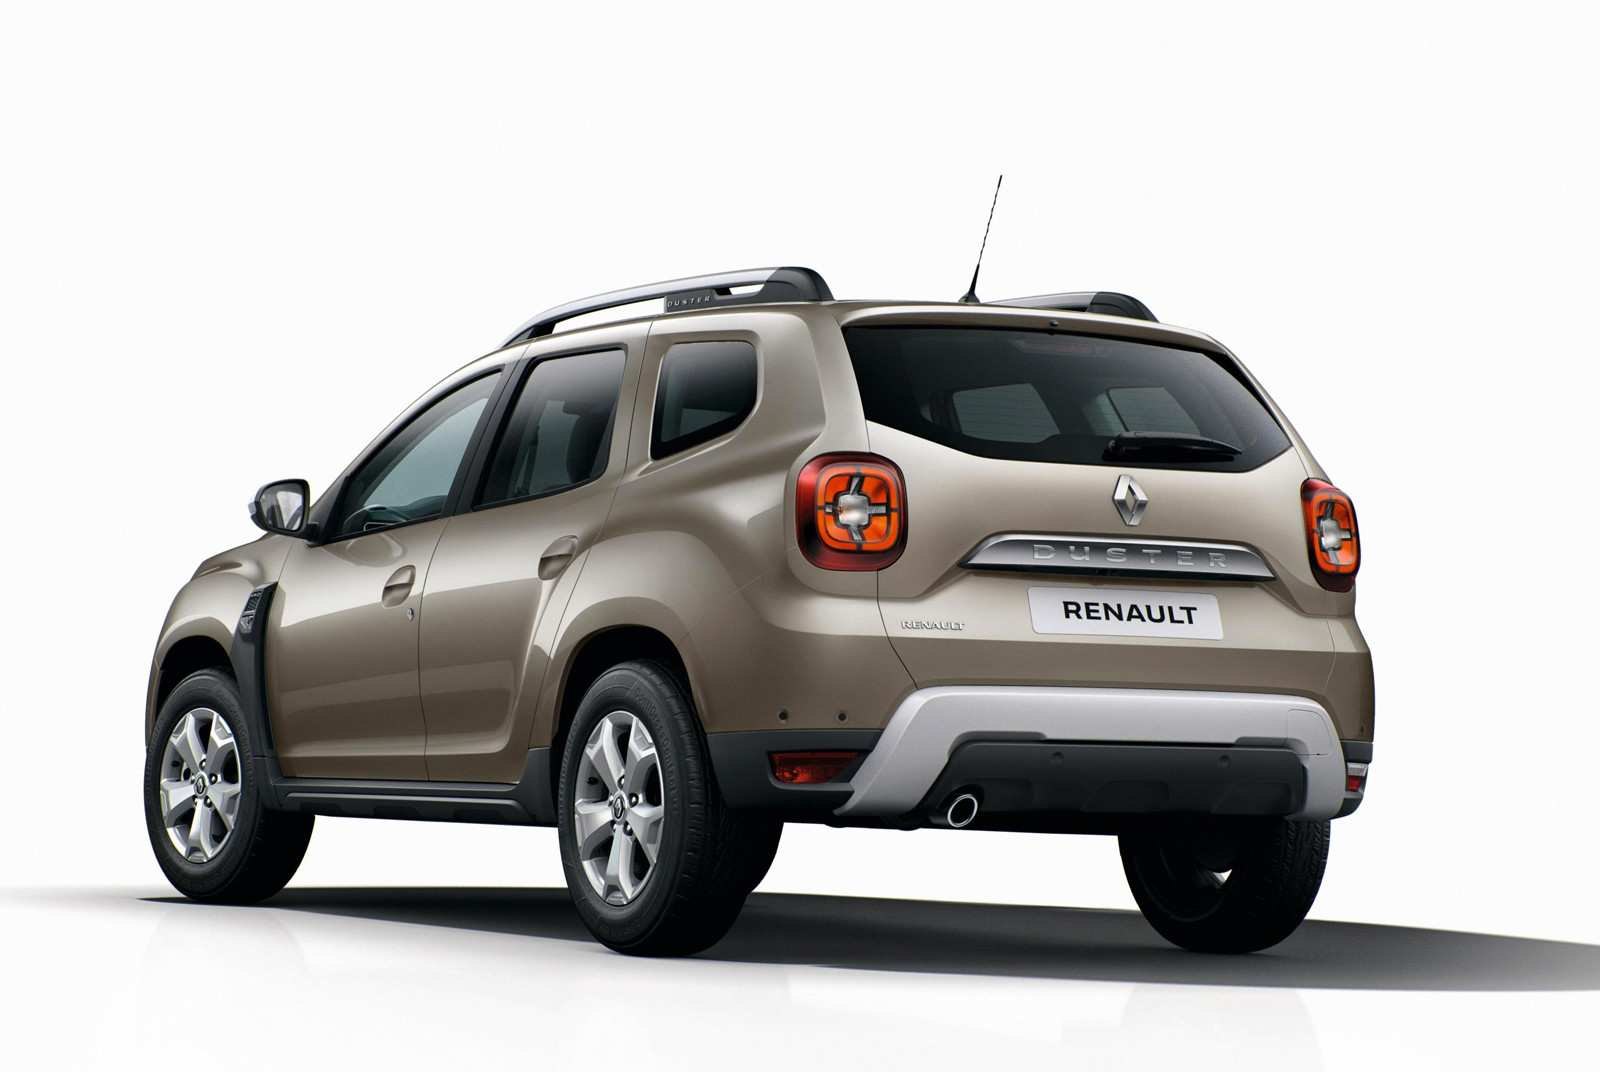 82 The Best Renault Duster 2019 Mexico Price And Release Date